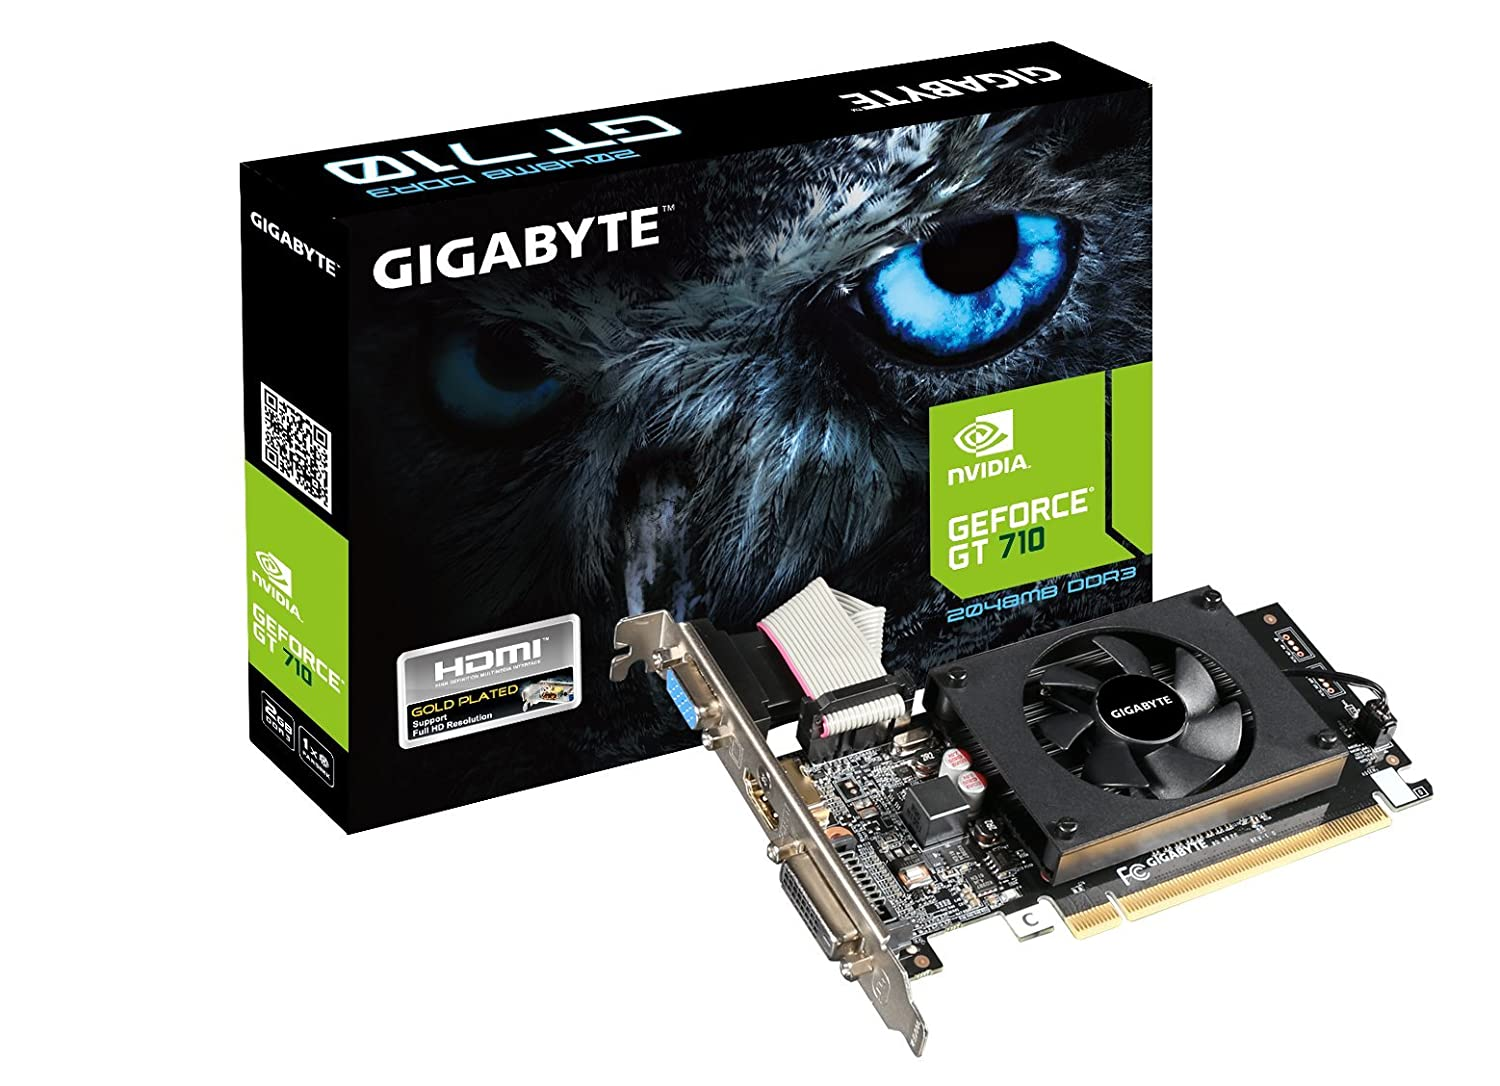 graphics card under 50 dollars